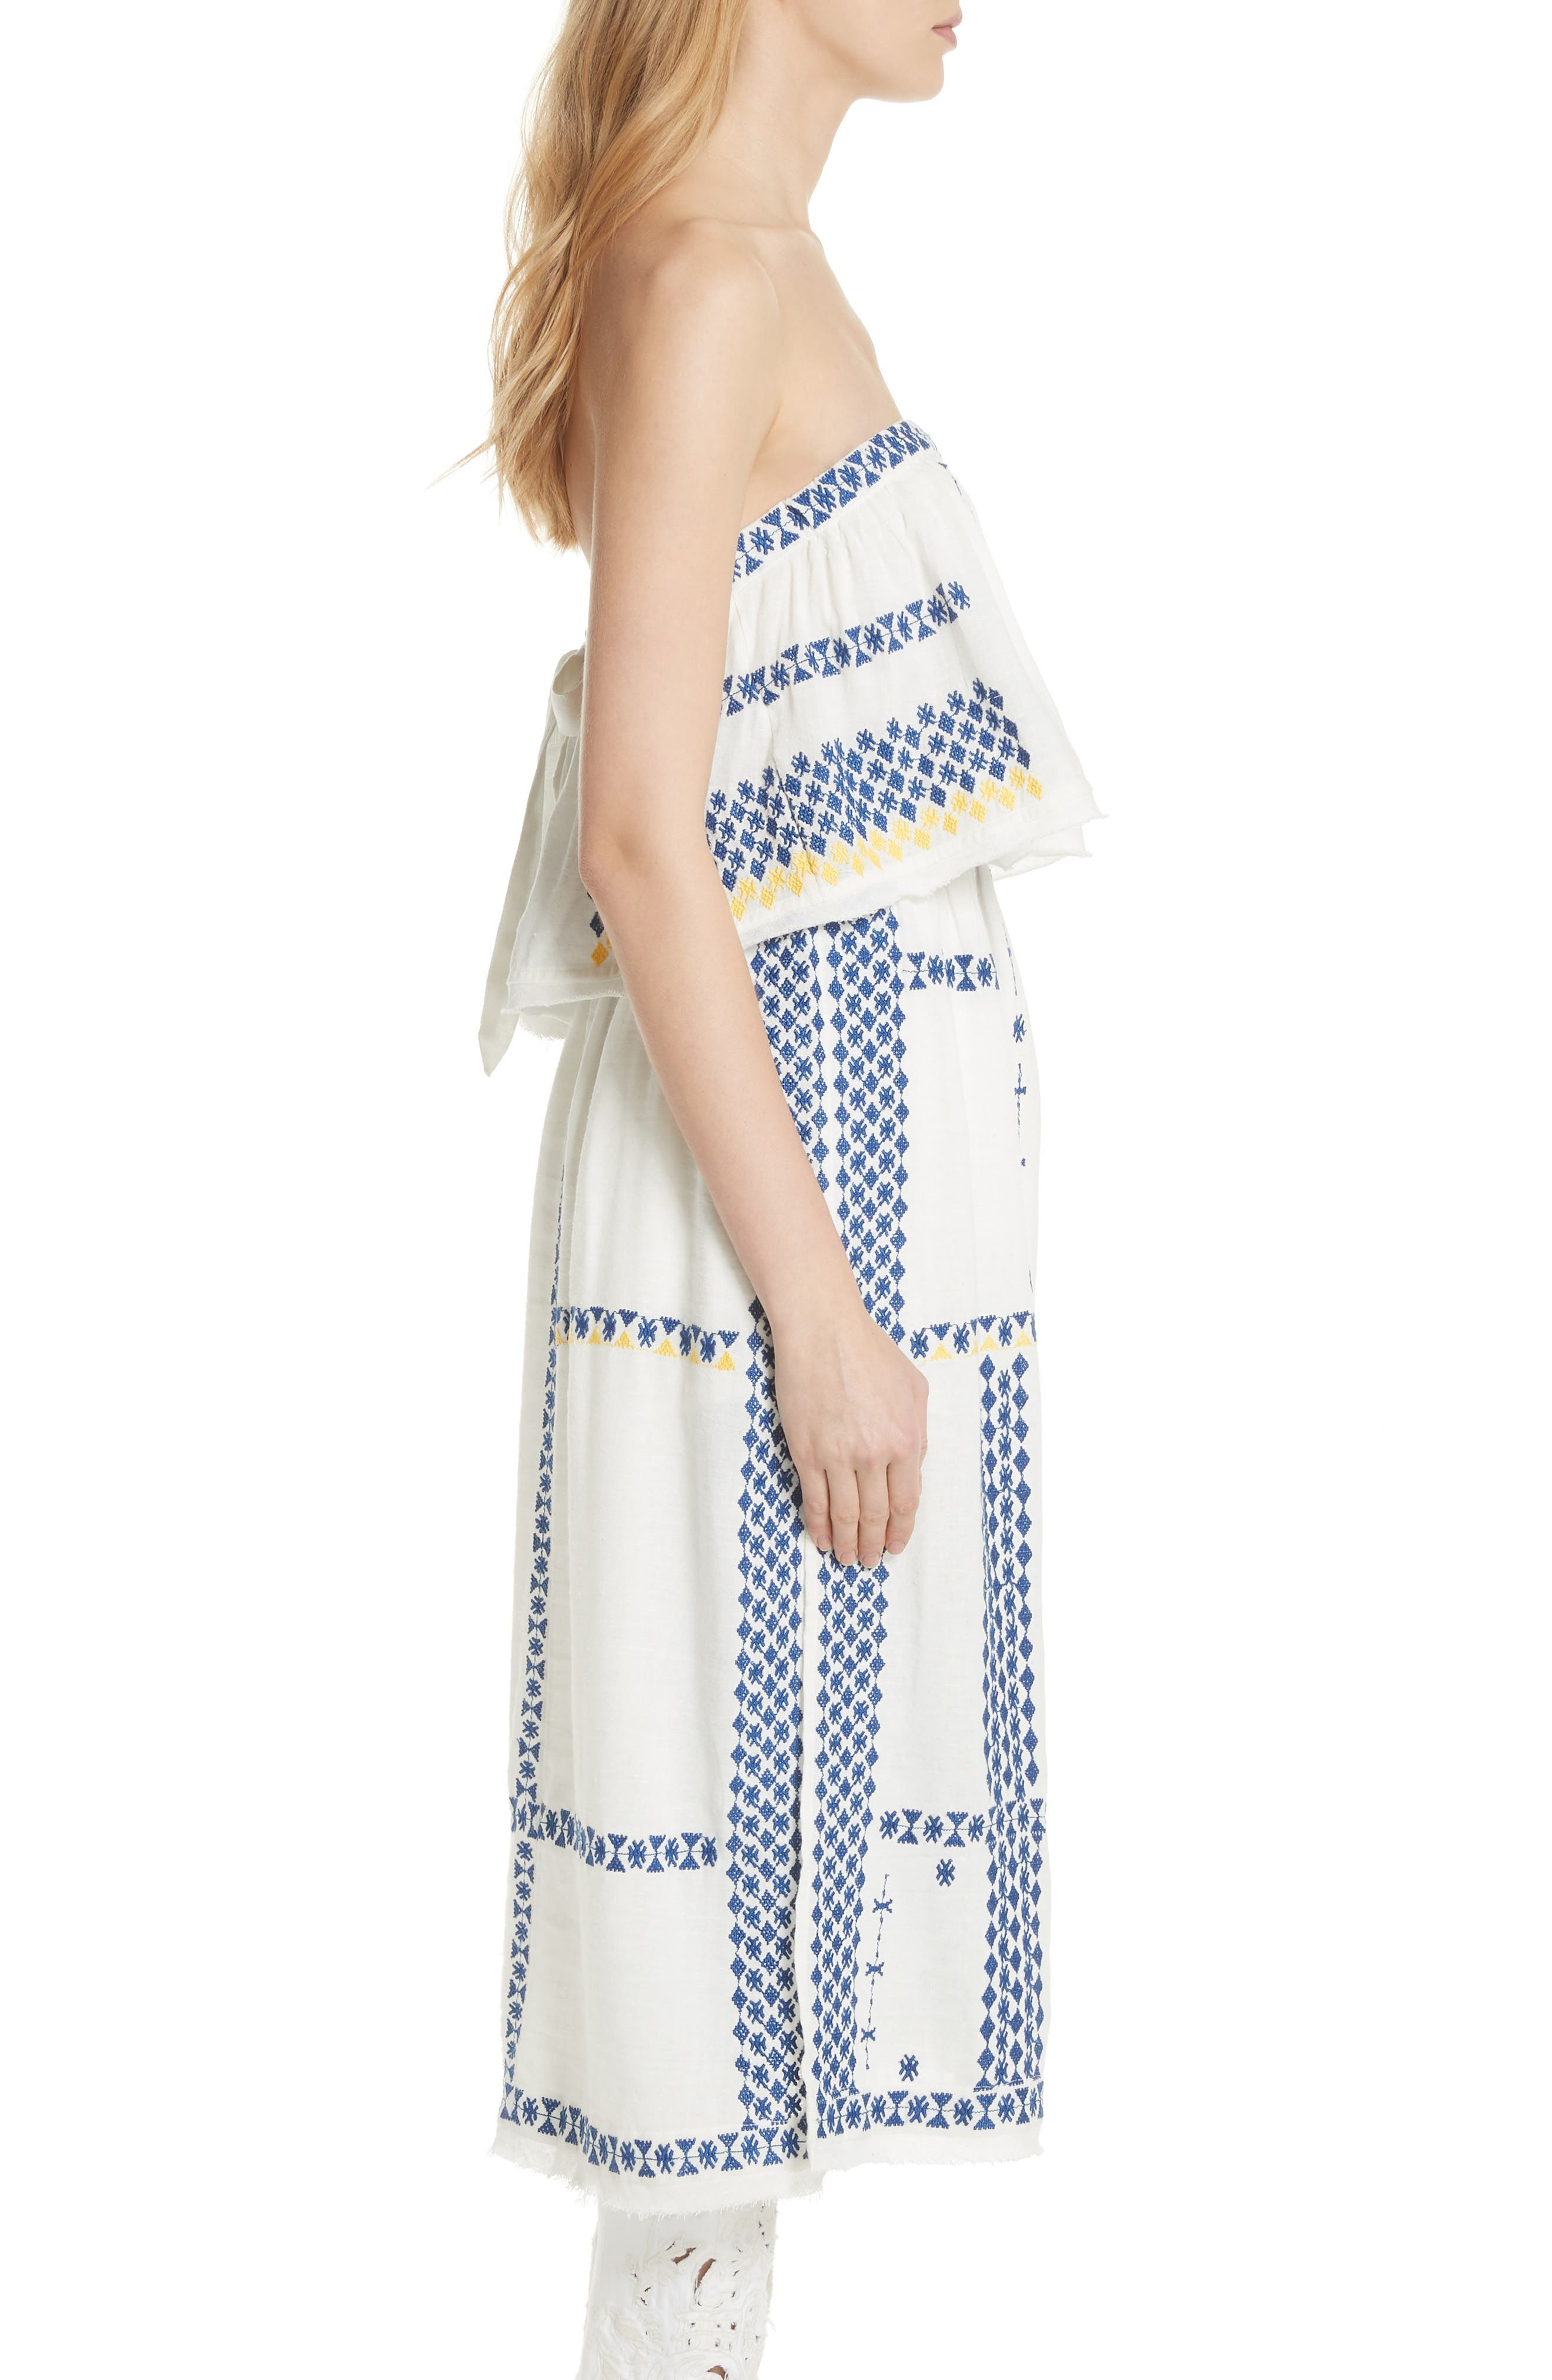 Wild Romance Embroidered Dress,                             Alternate thumbnail 3, color,                             Ivory